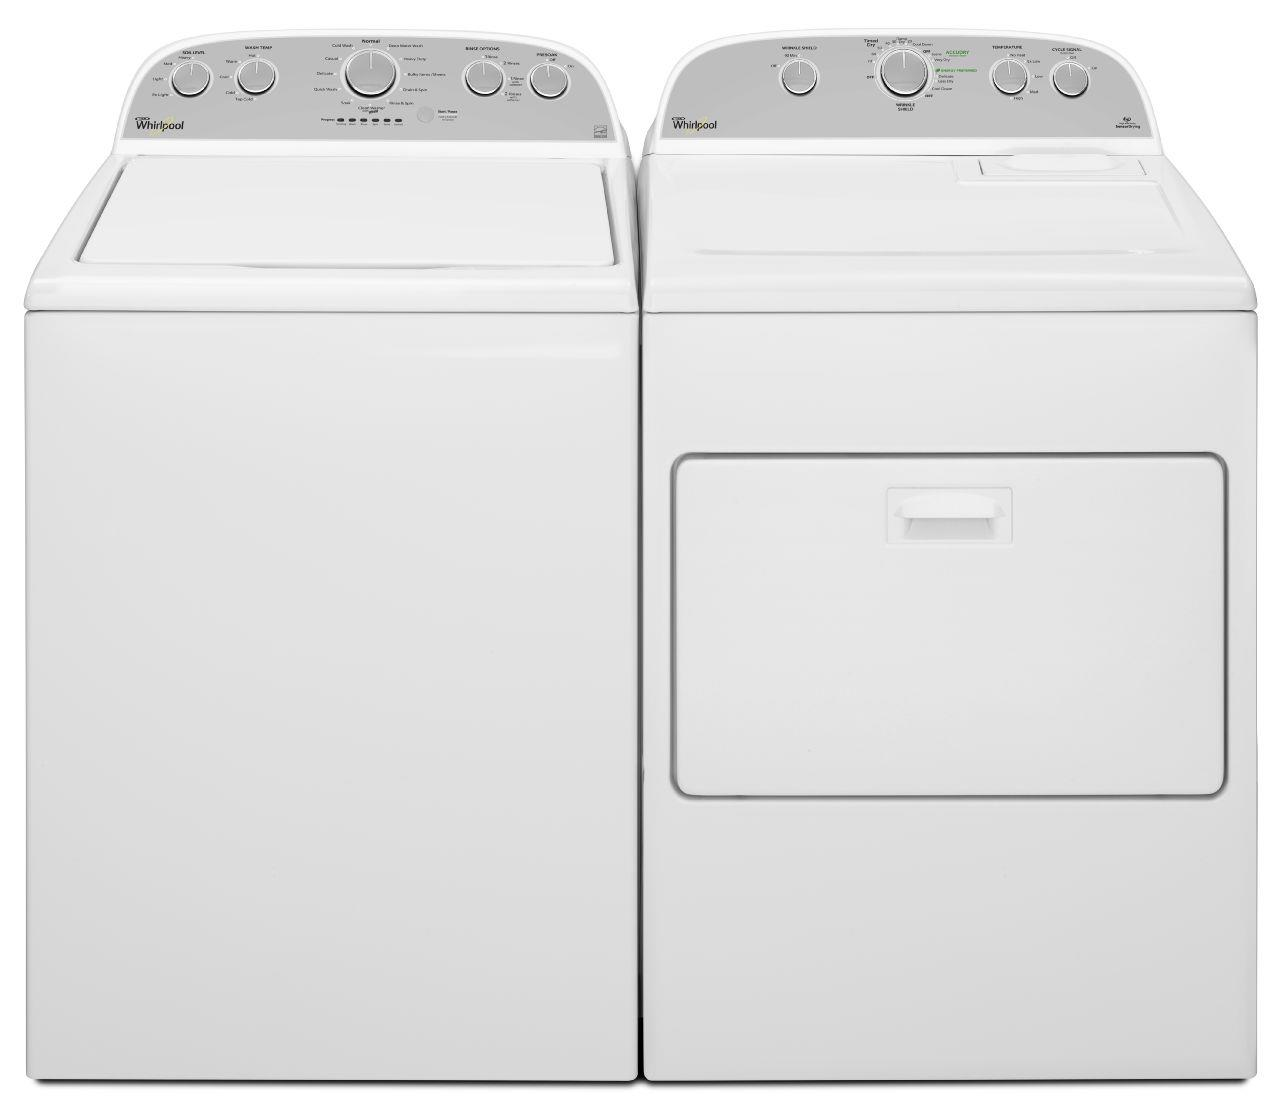 Whirlpool Washer and Dryer Sets Top Load Washer and Electric Dryer Set - Item Number: WTW5000DW+WED5000DW